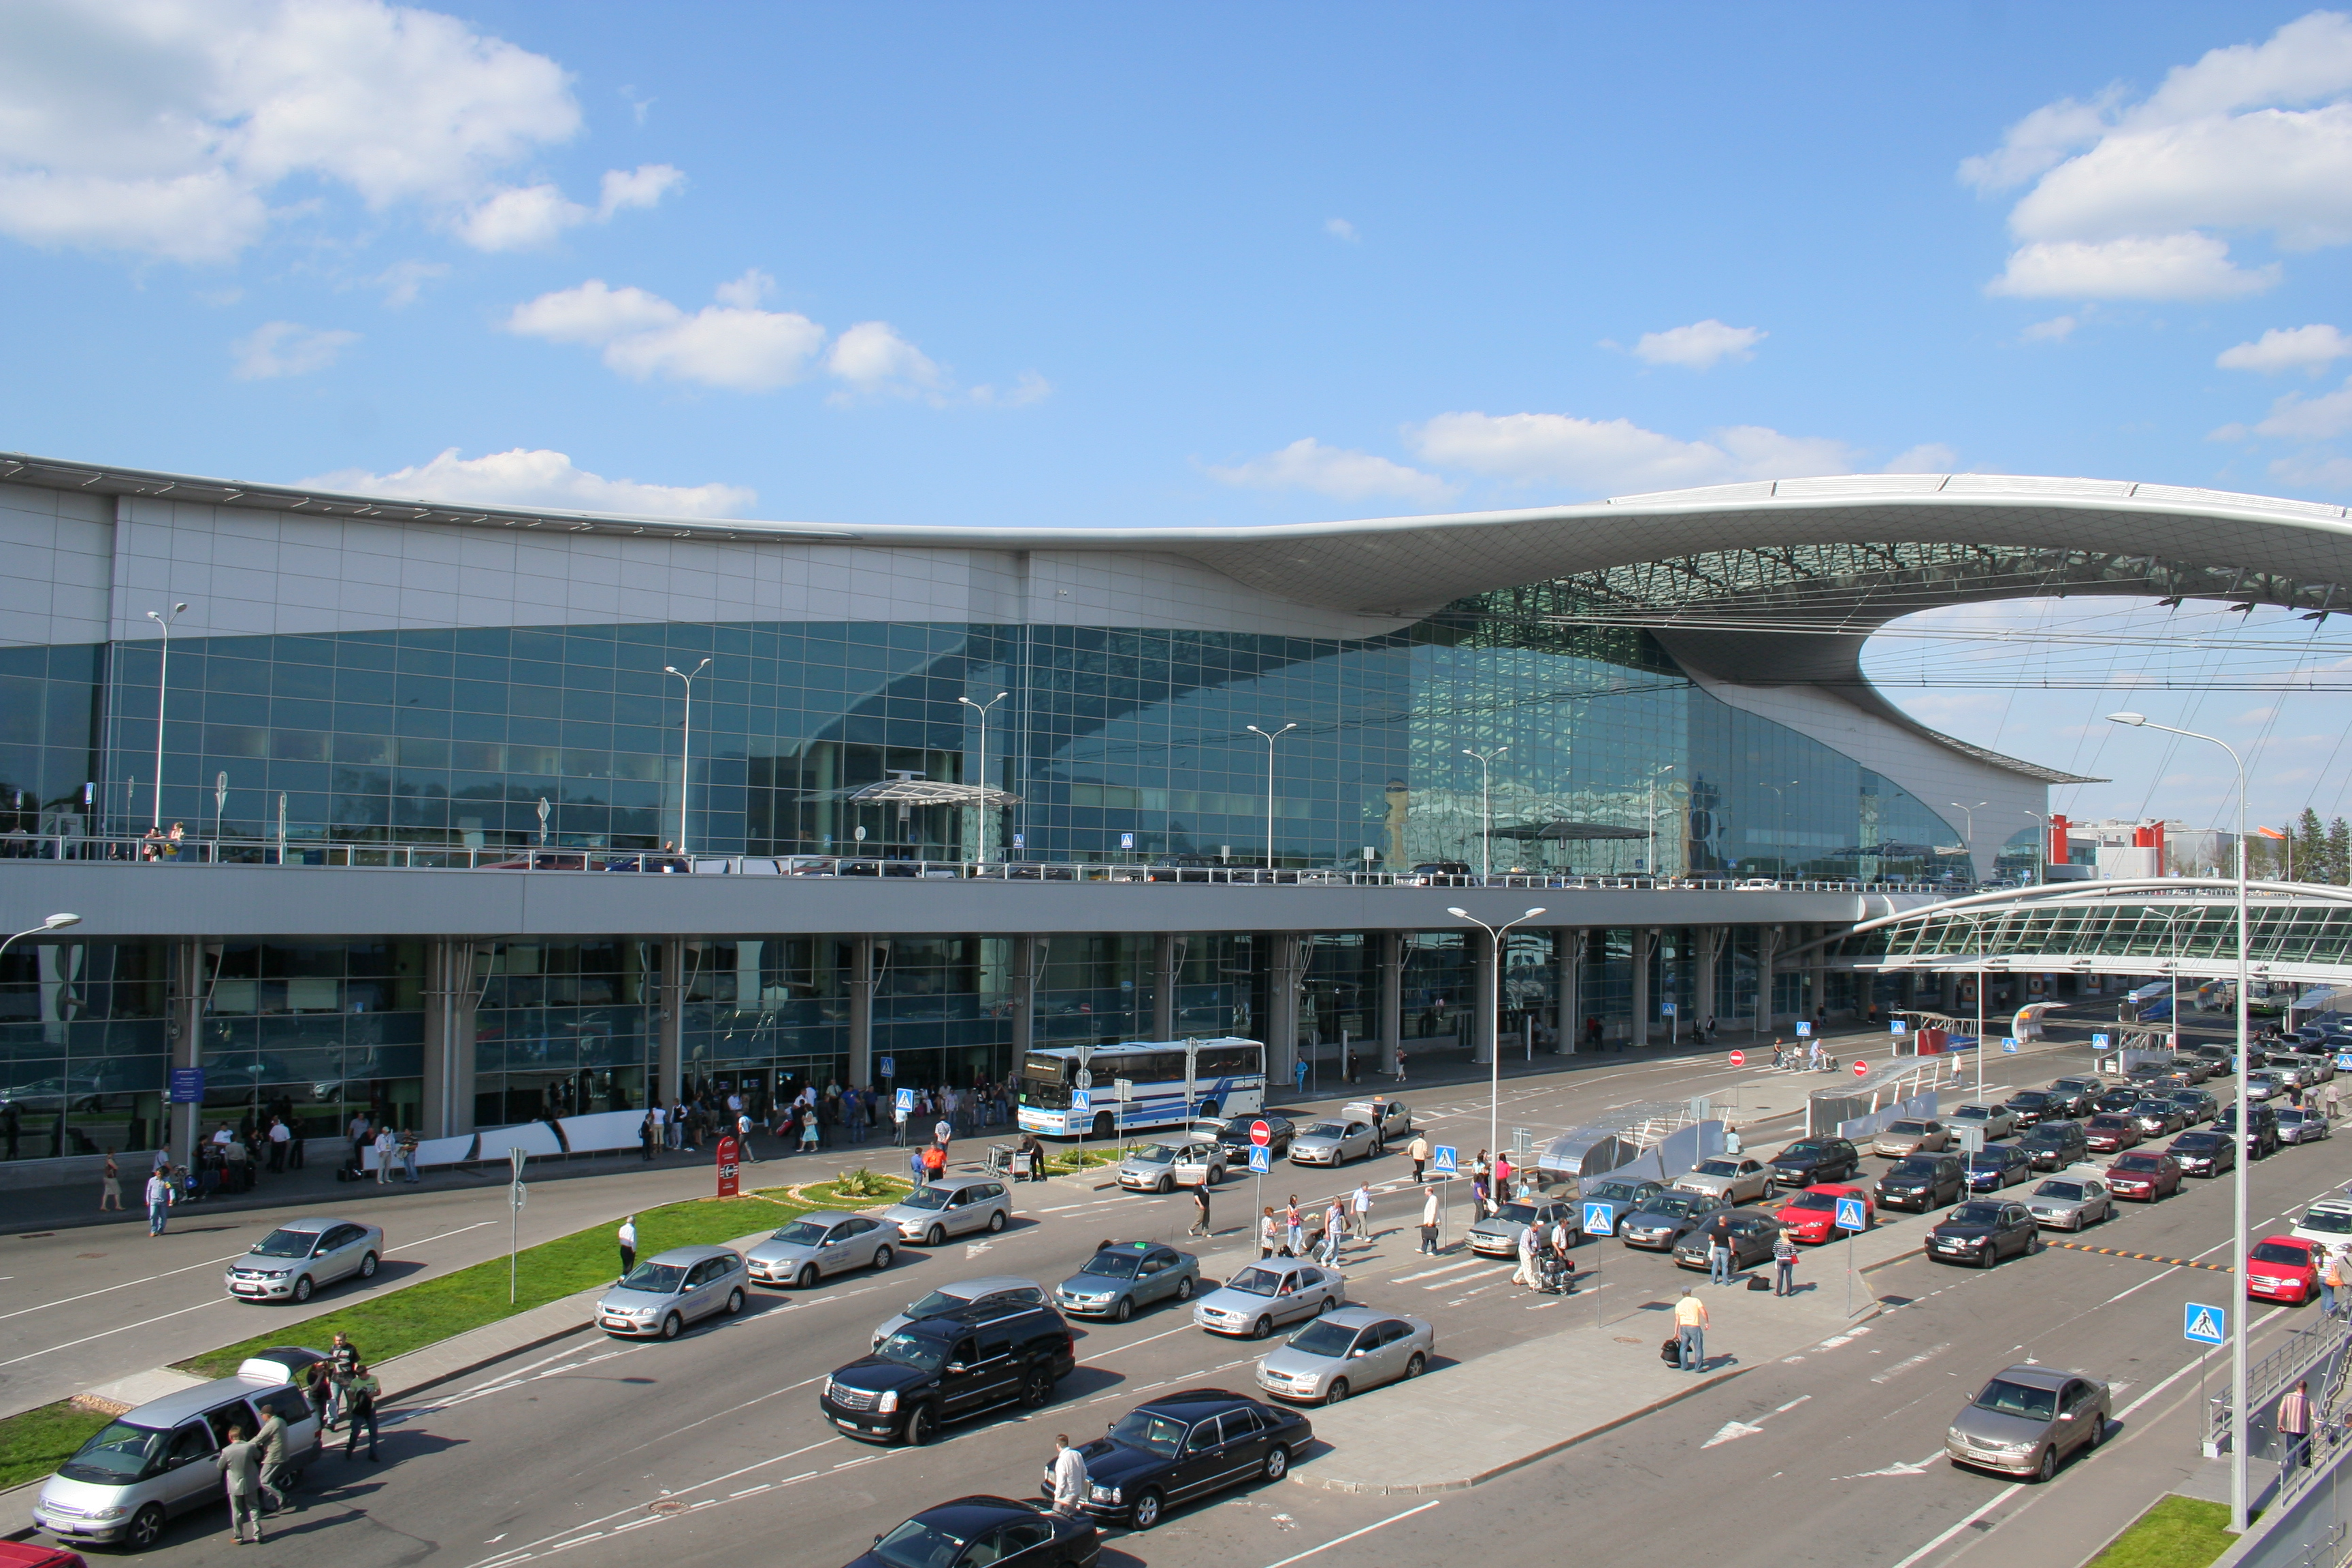 a078cb013eae Sheremetyevo International Airport – Travel guide at Wikivoyage